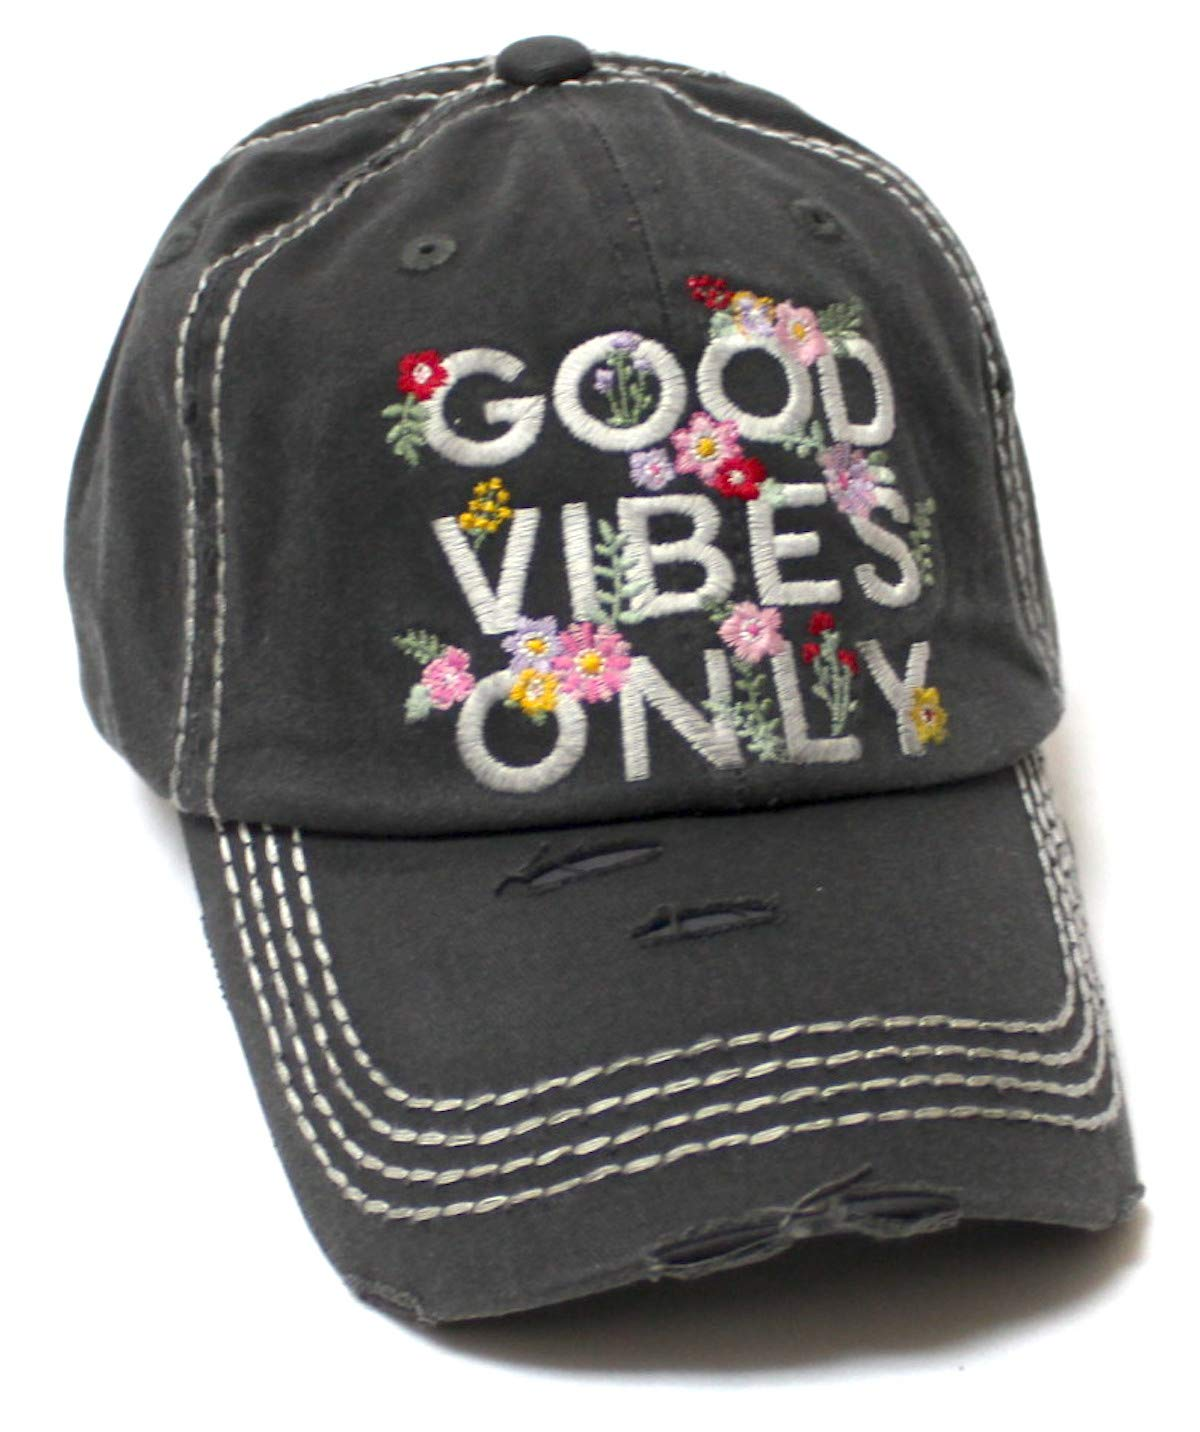 Women's Summer Ballcap Good Vibes Only Floral Monogram Embroidery Beach Hat, Vintage Black - Caps 'N Vintage